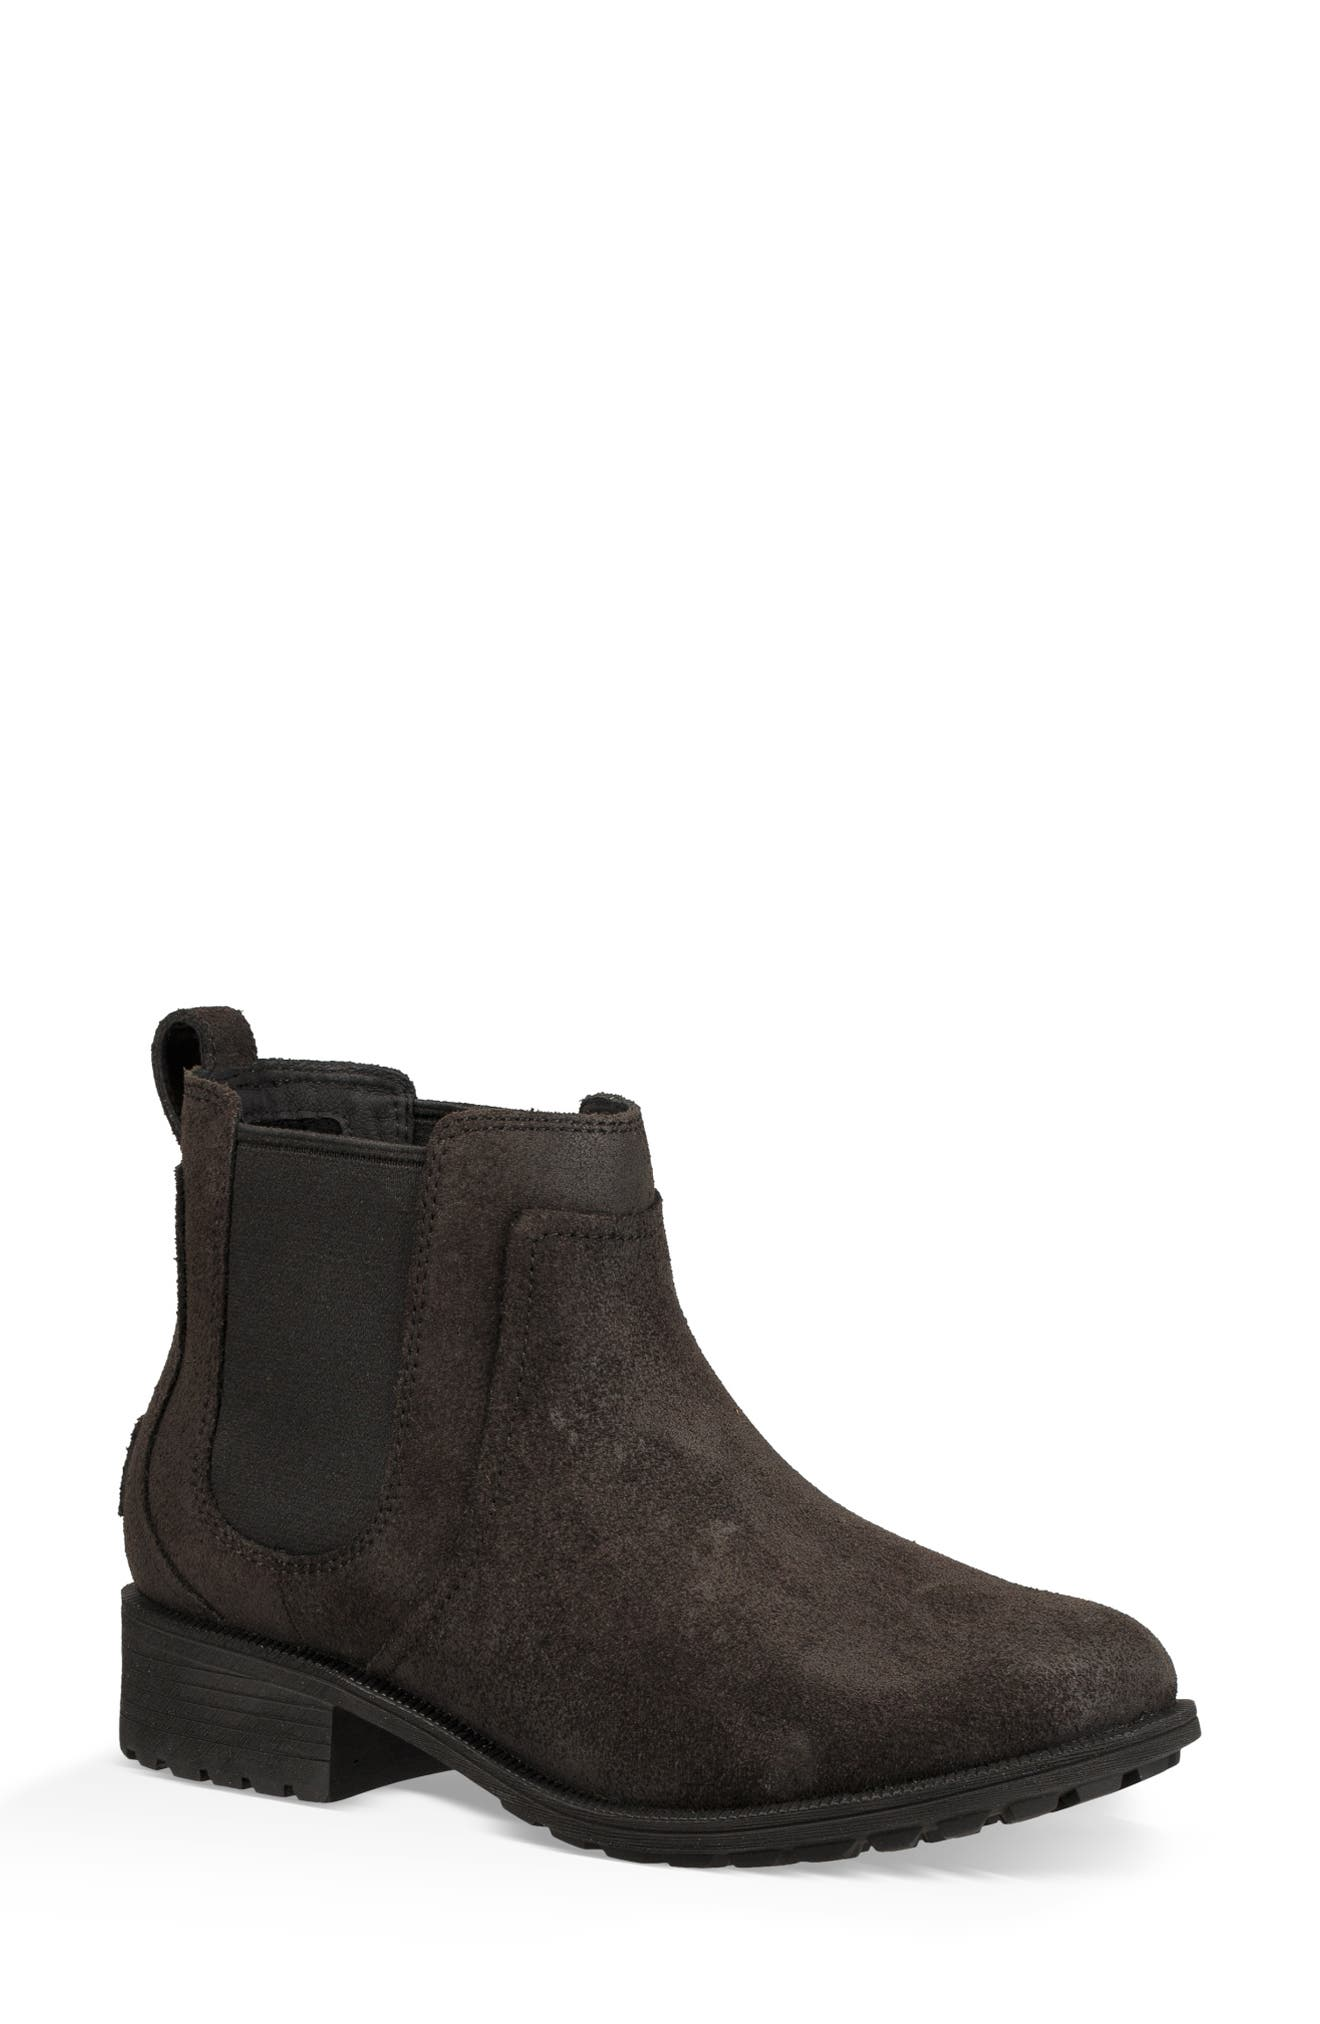 Bonham II Waterproof Chelsea Bootie,                         Main,                         color, BLACK